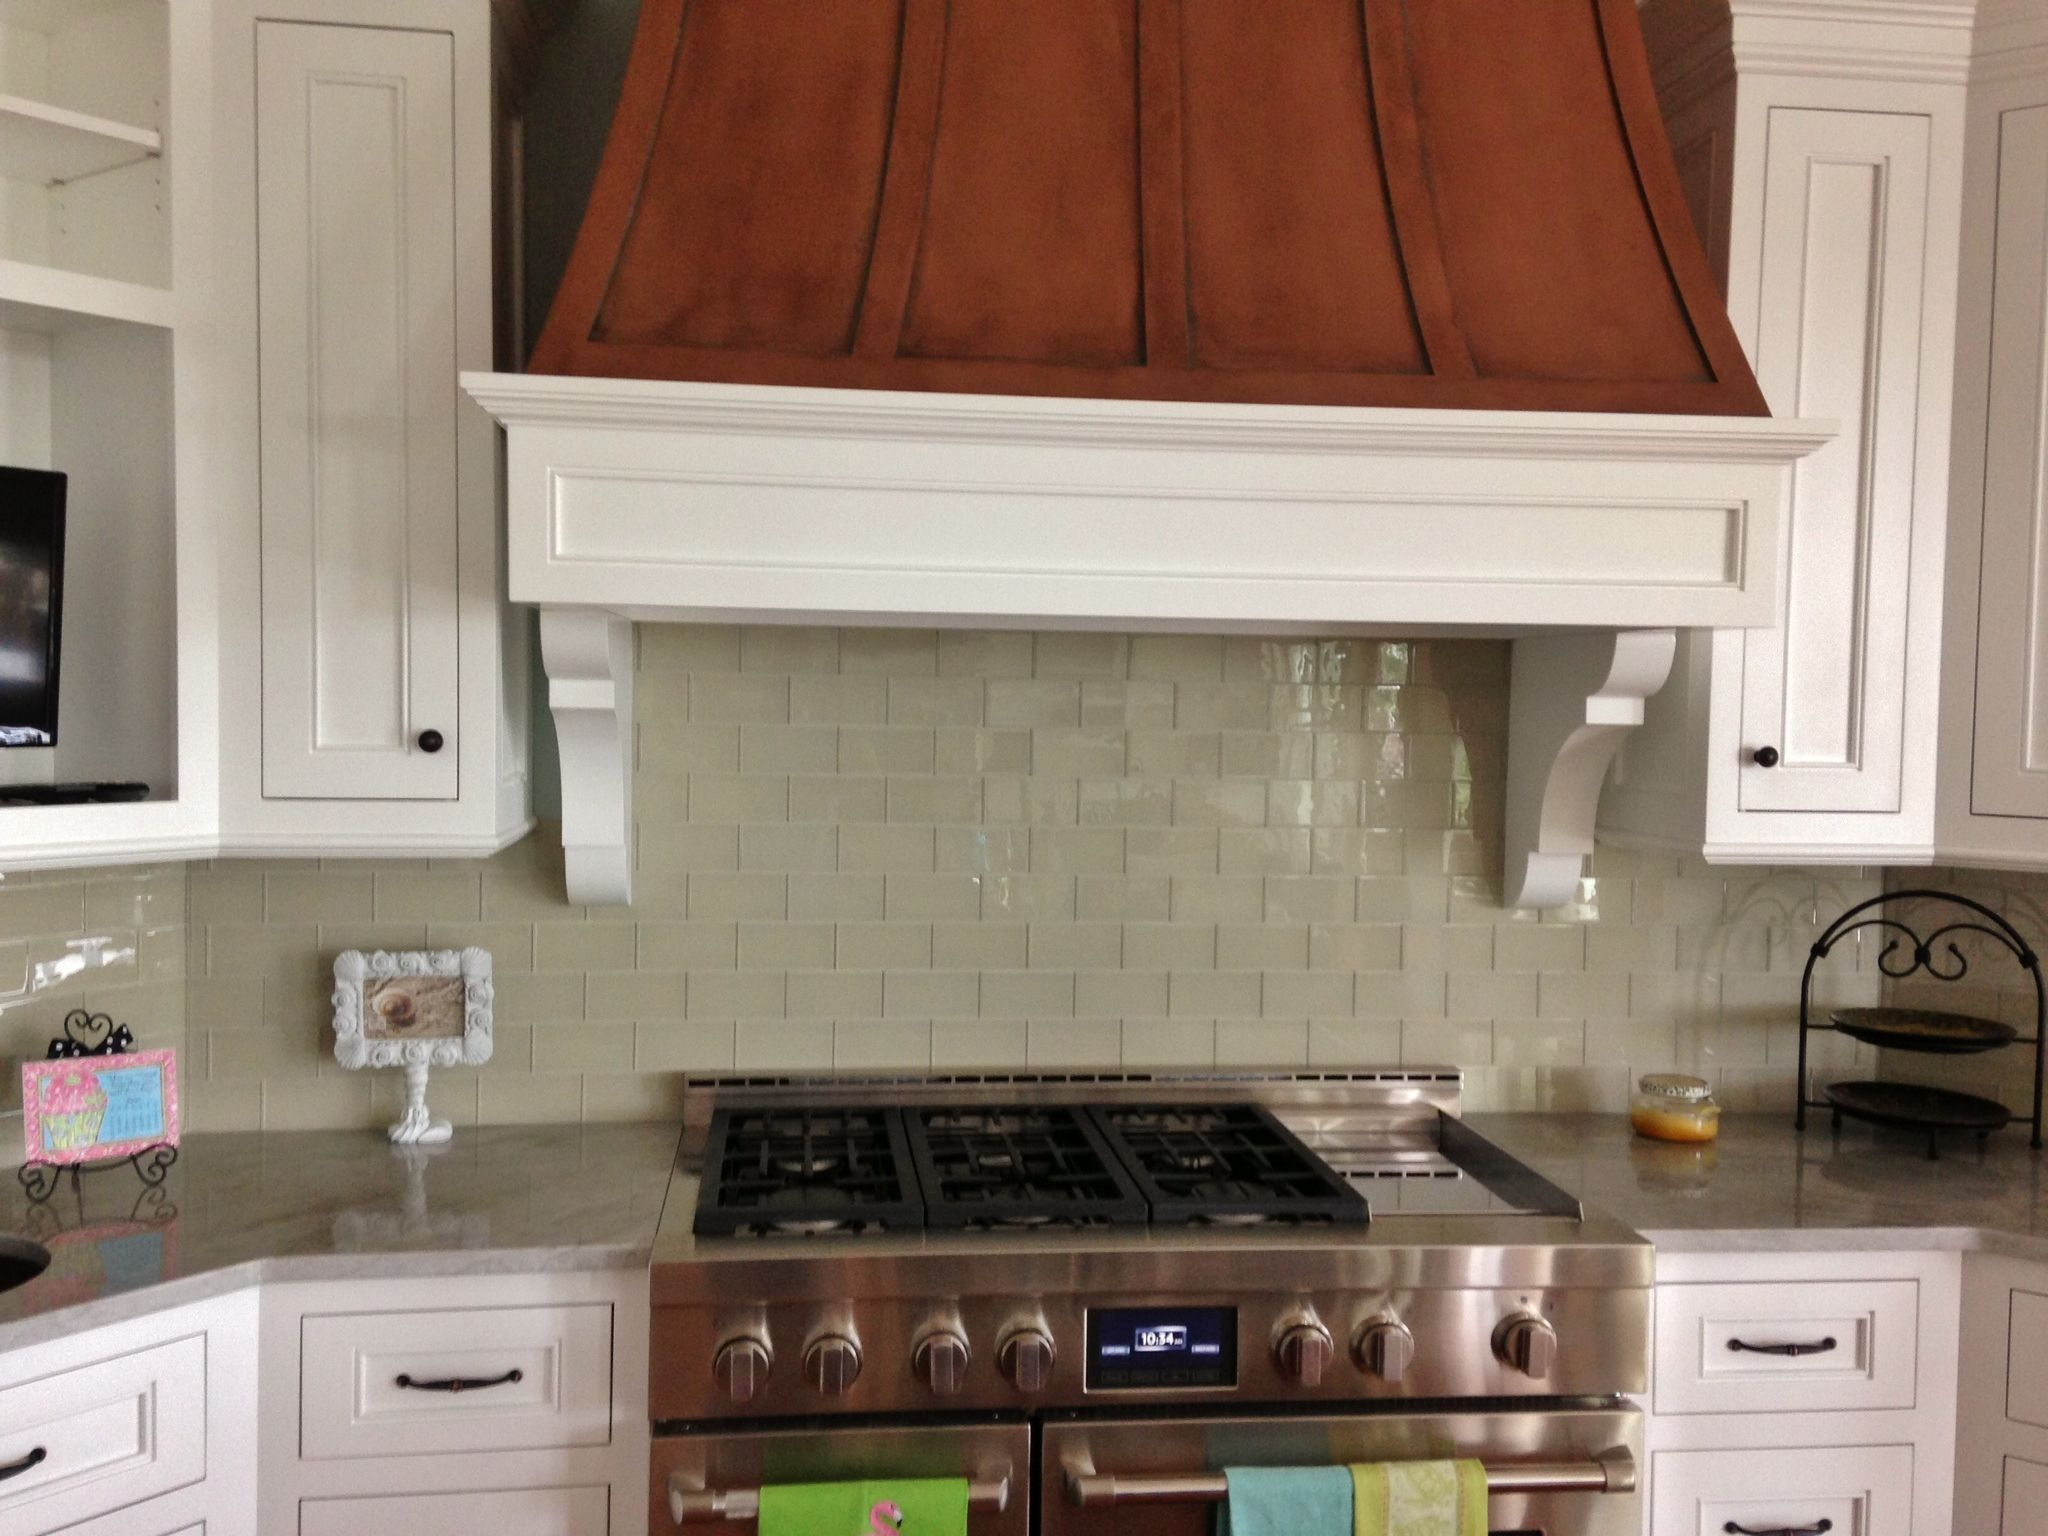 3x6 glass subway tiles were used in this kitchen backsplash Simple and modern with no